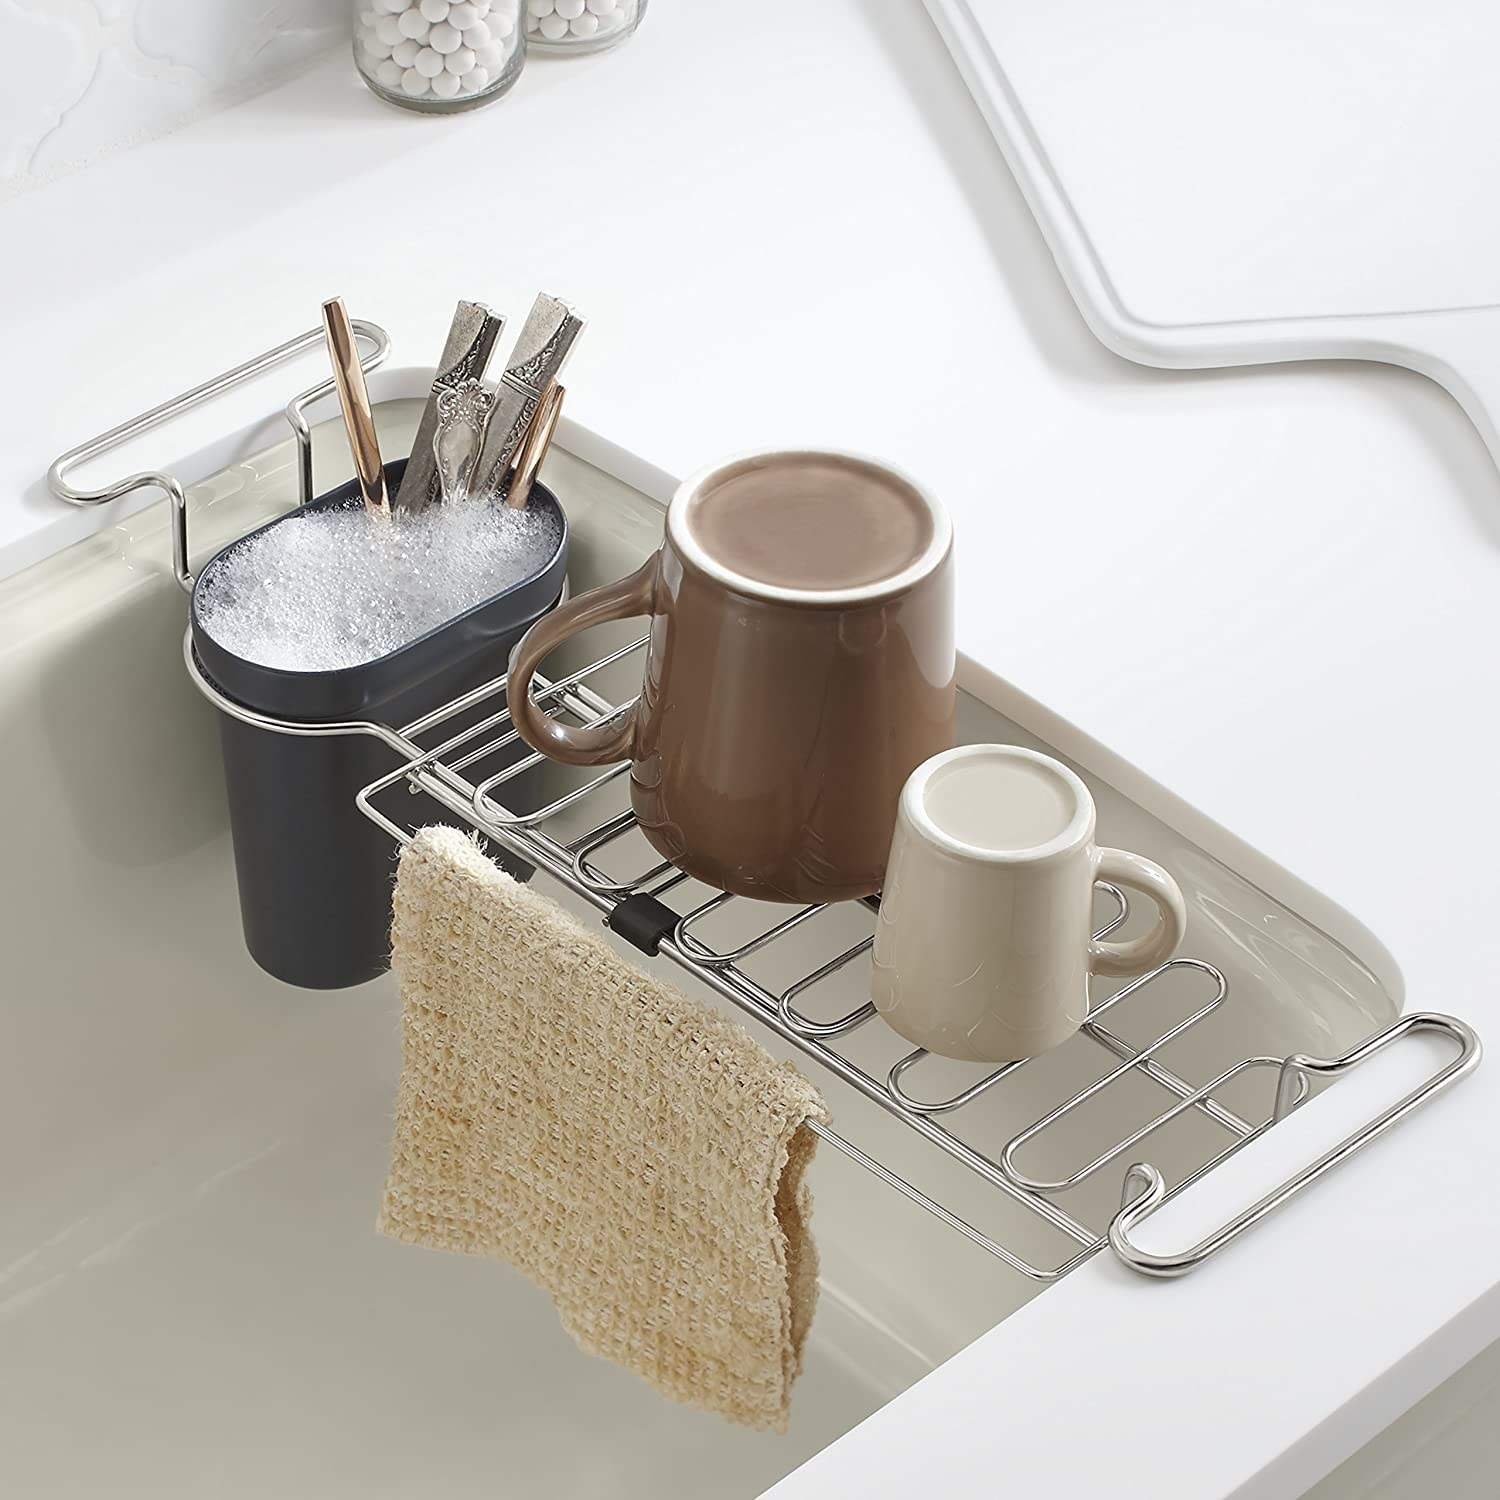 The extendable caddy placed inside a sink and loaded with clean mugs, silverware, and a wet dish rag